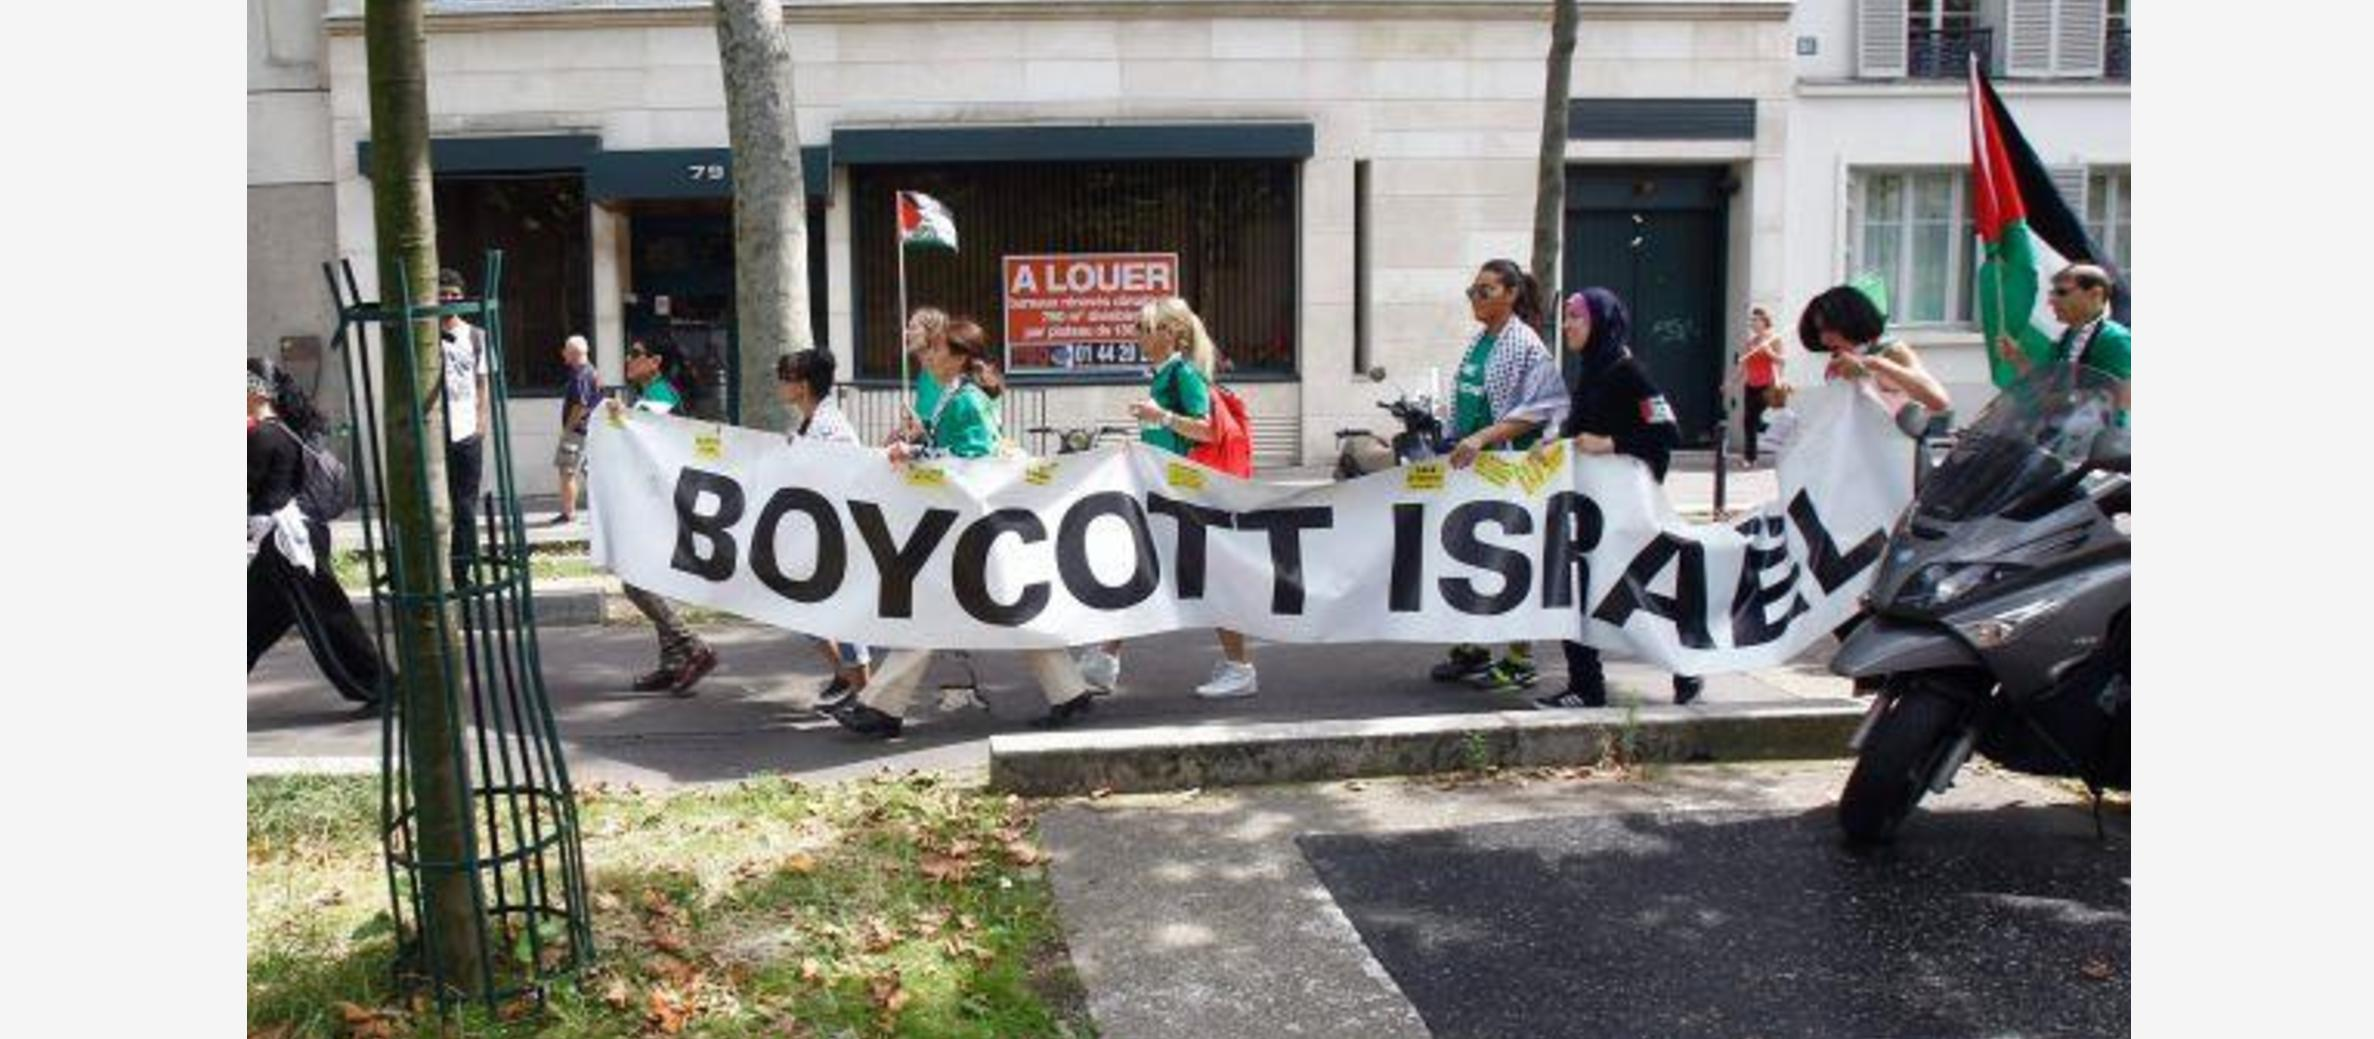 CUFI welcomes government plans to block boycotts of Israel